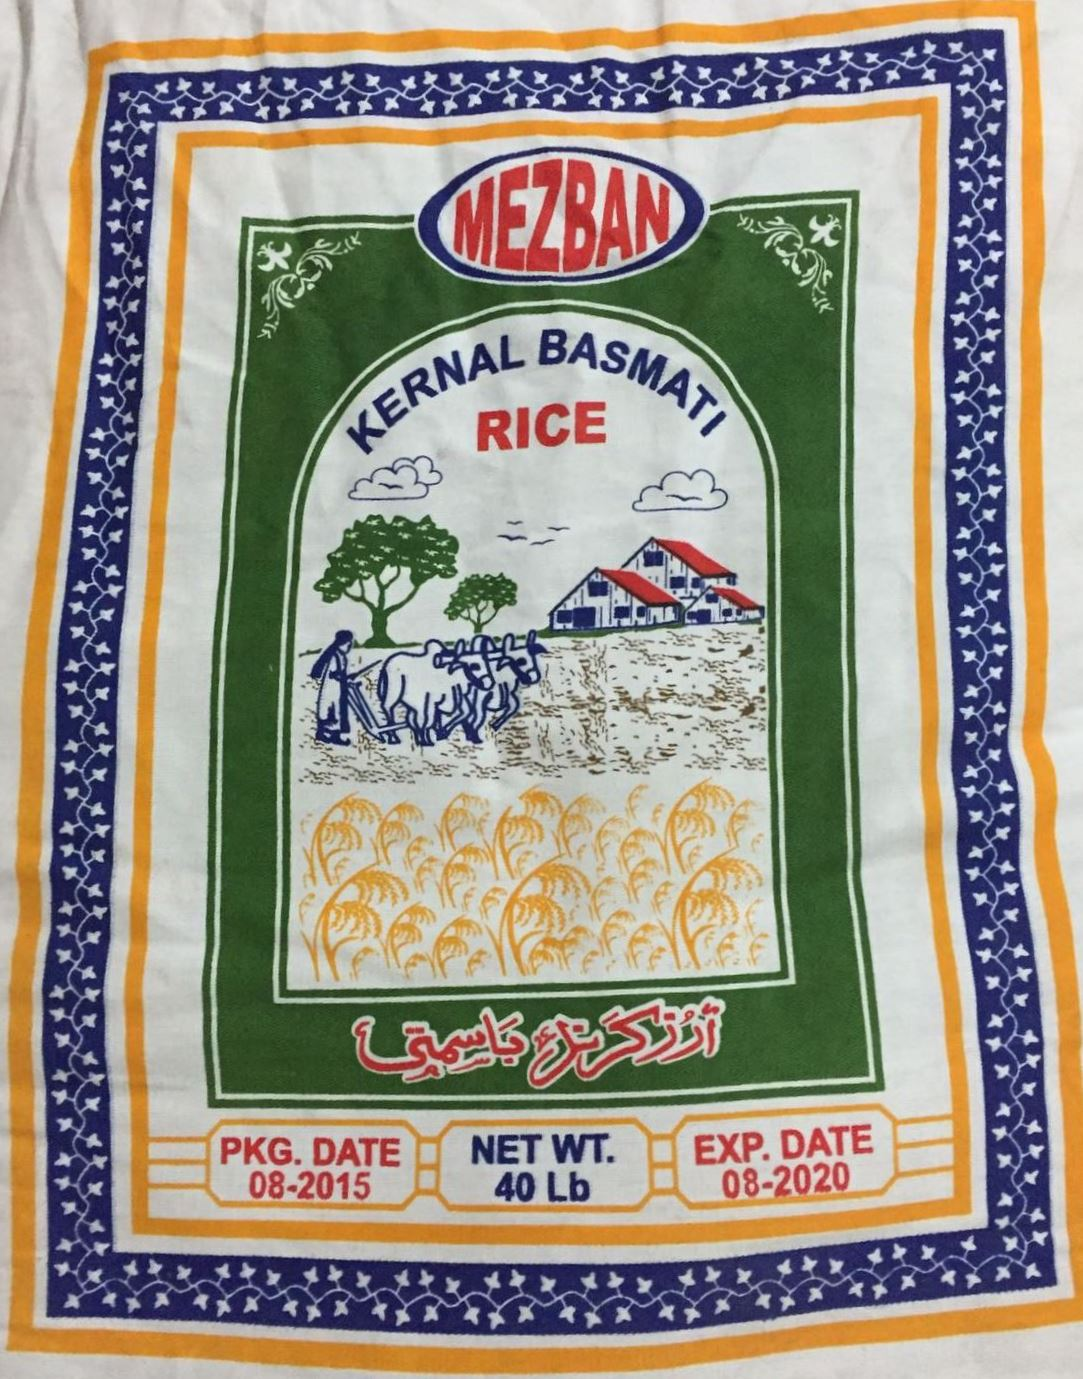 Mezban Kernal Basmati Rice Pakistan 4.5kg